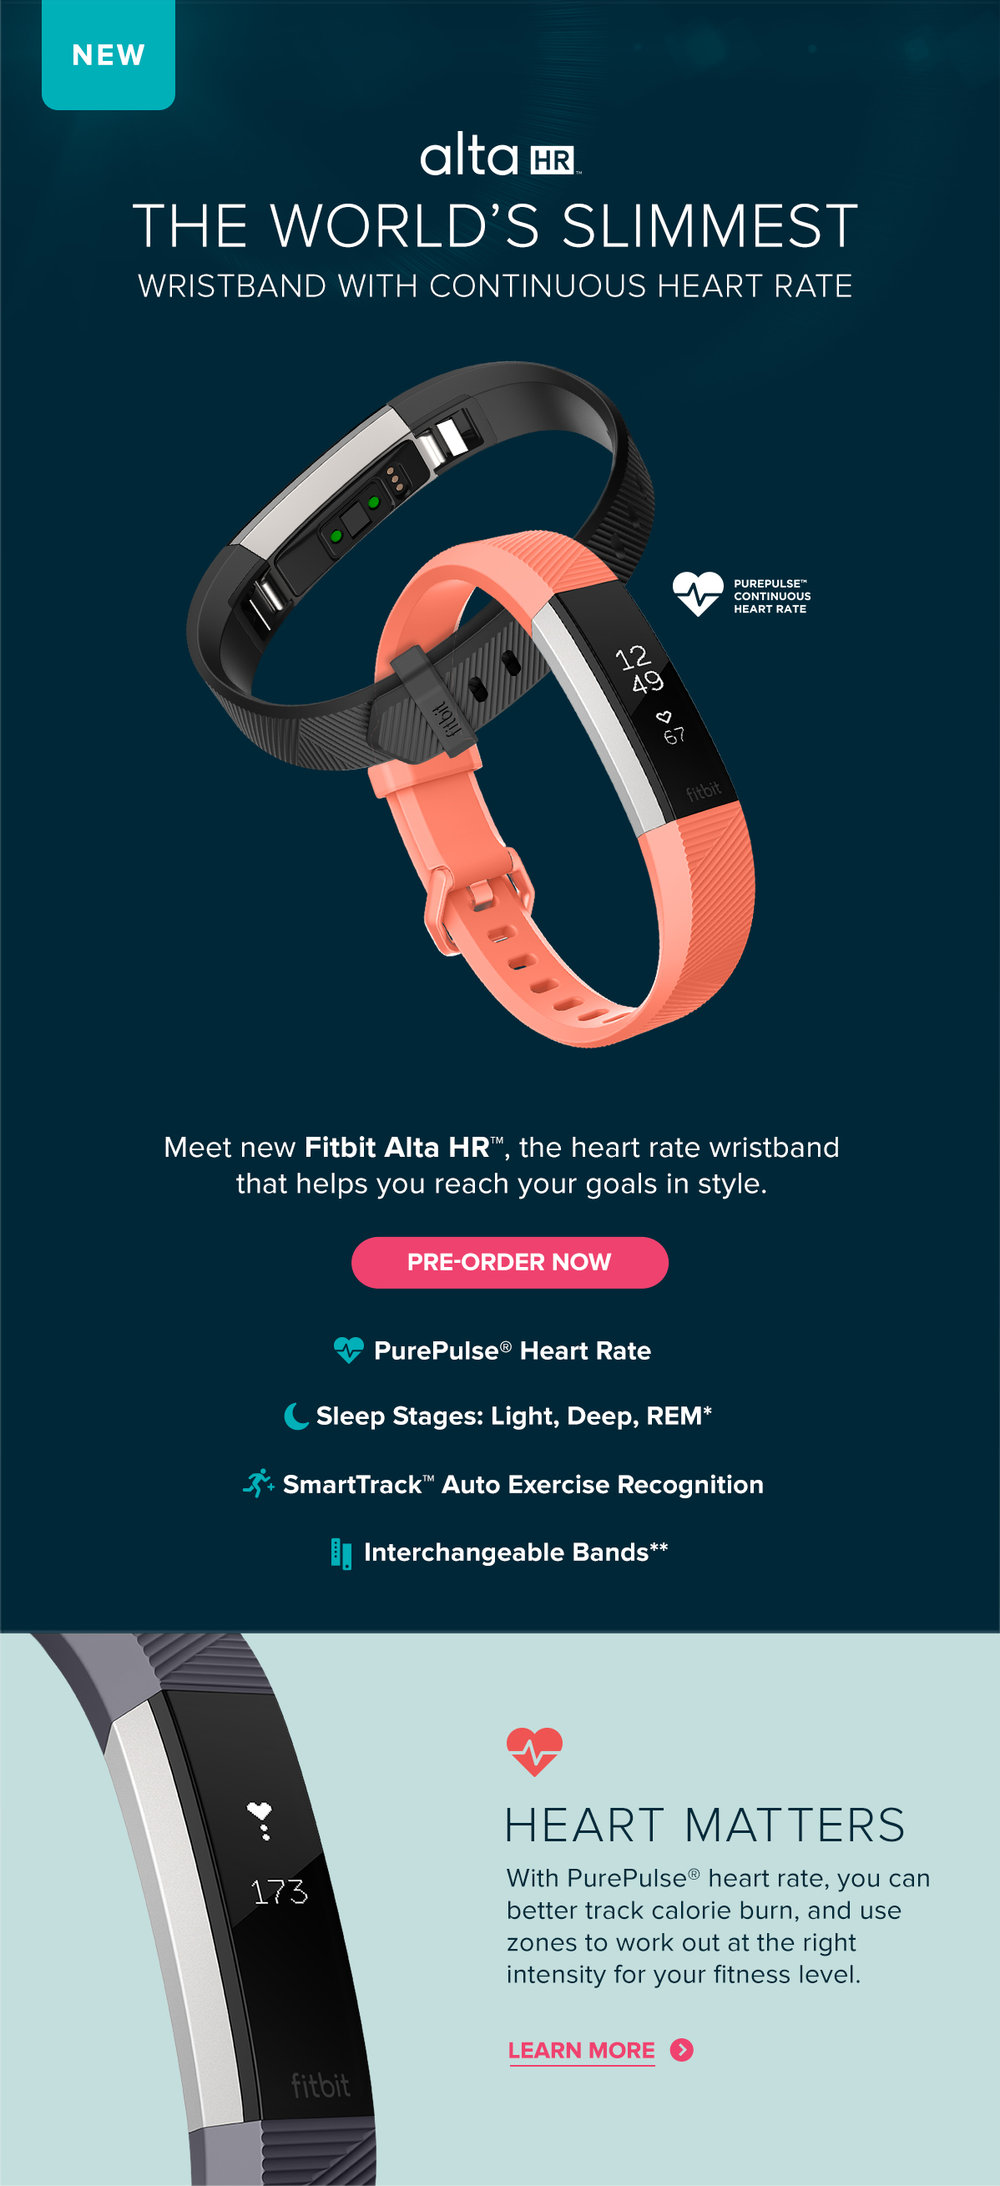 itbit Alta HR Announce - Why Heart Rate?